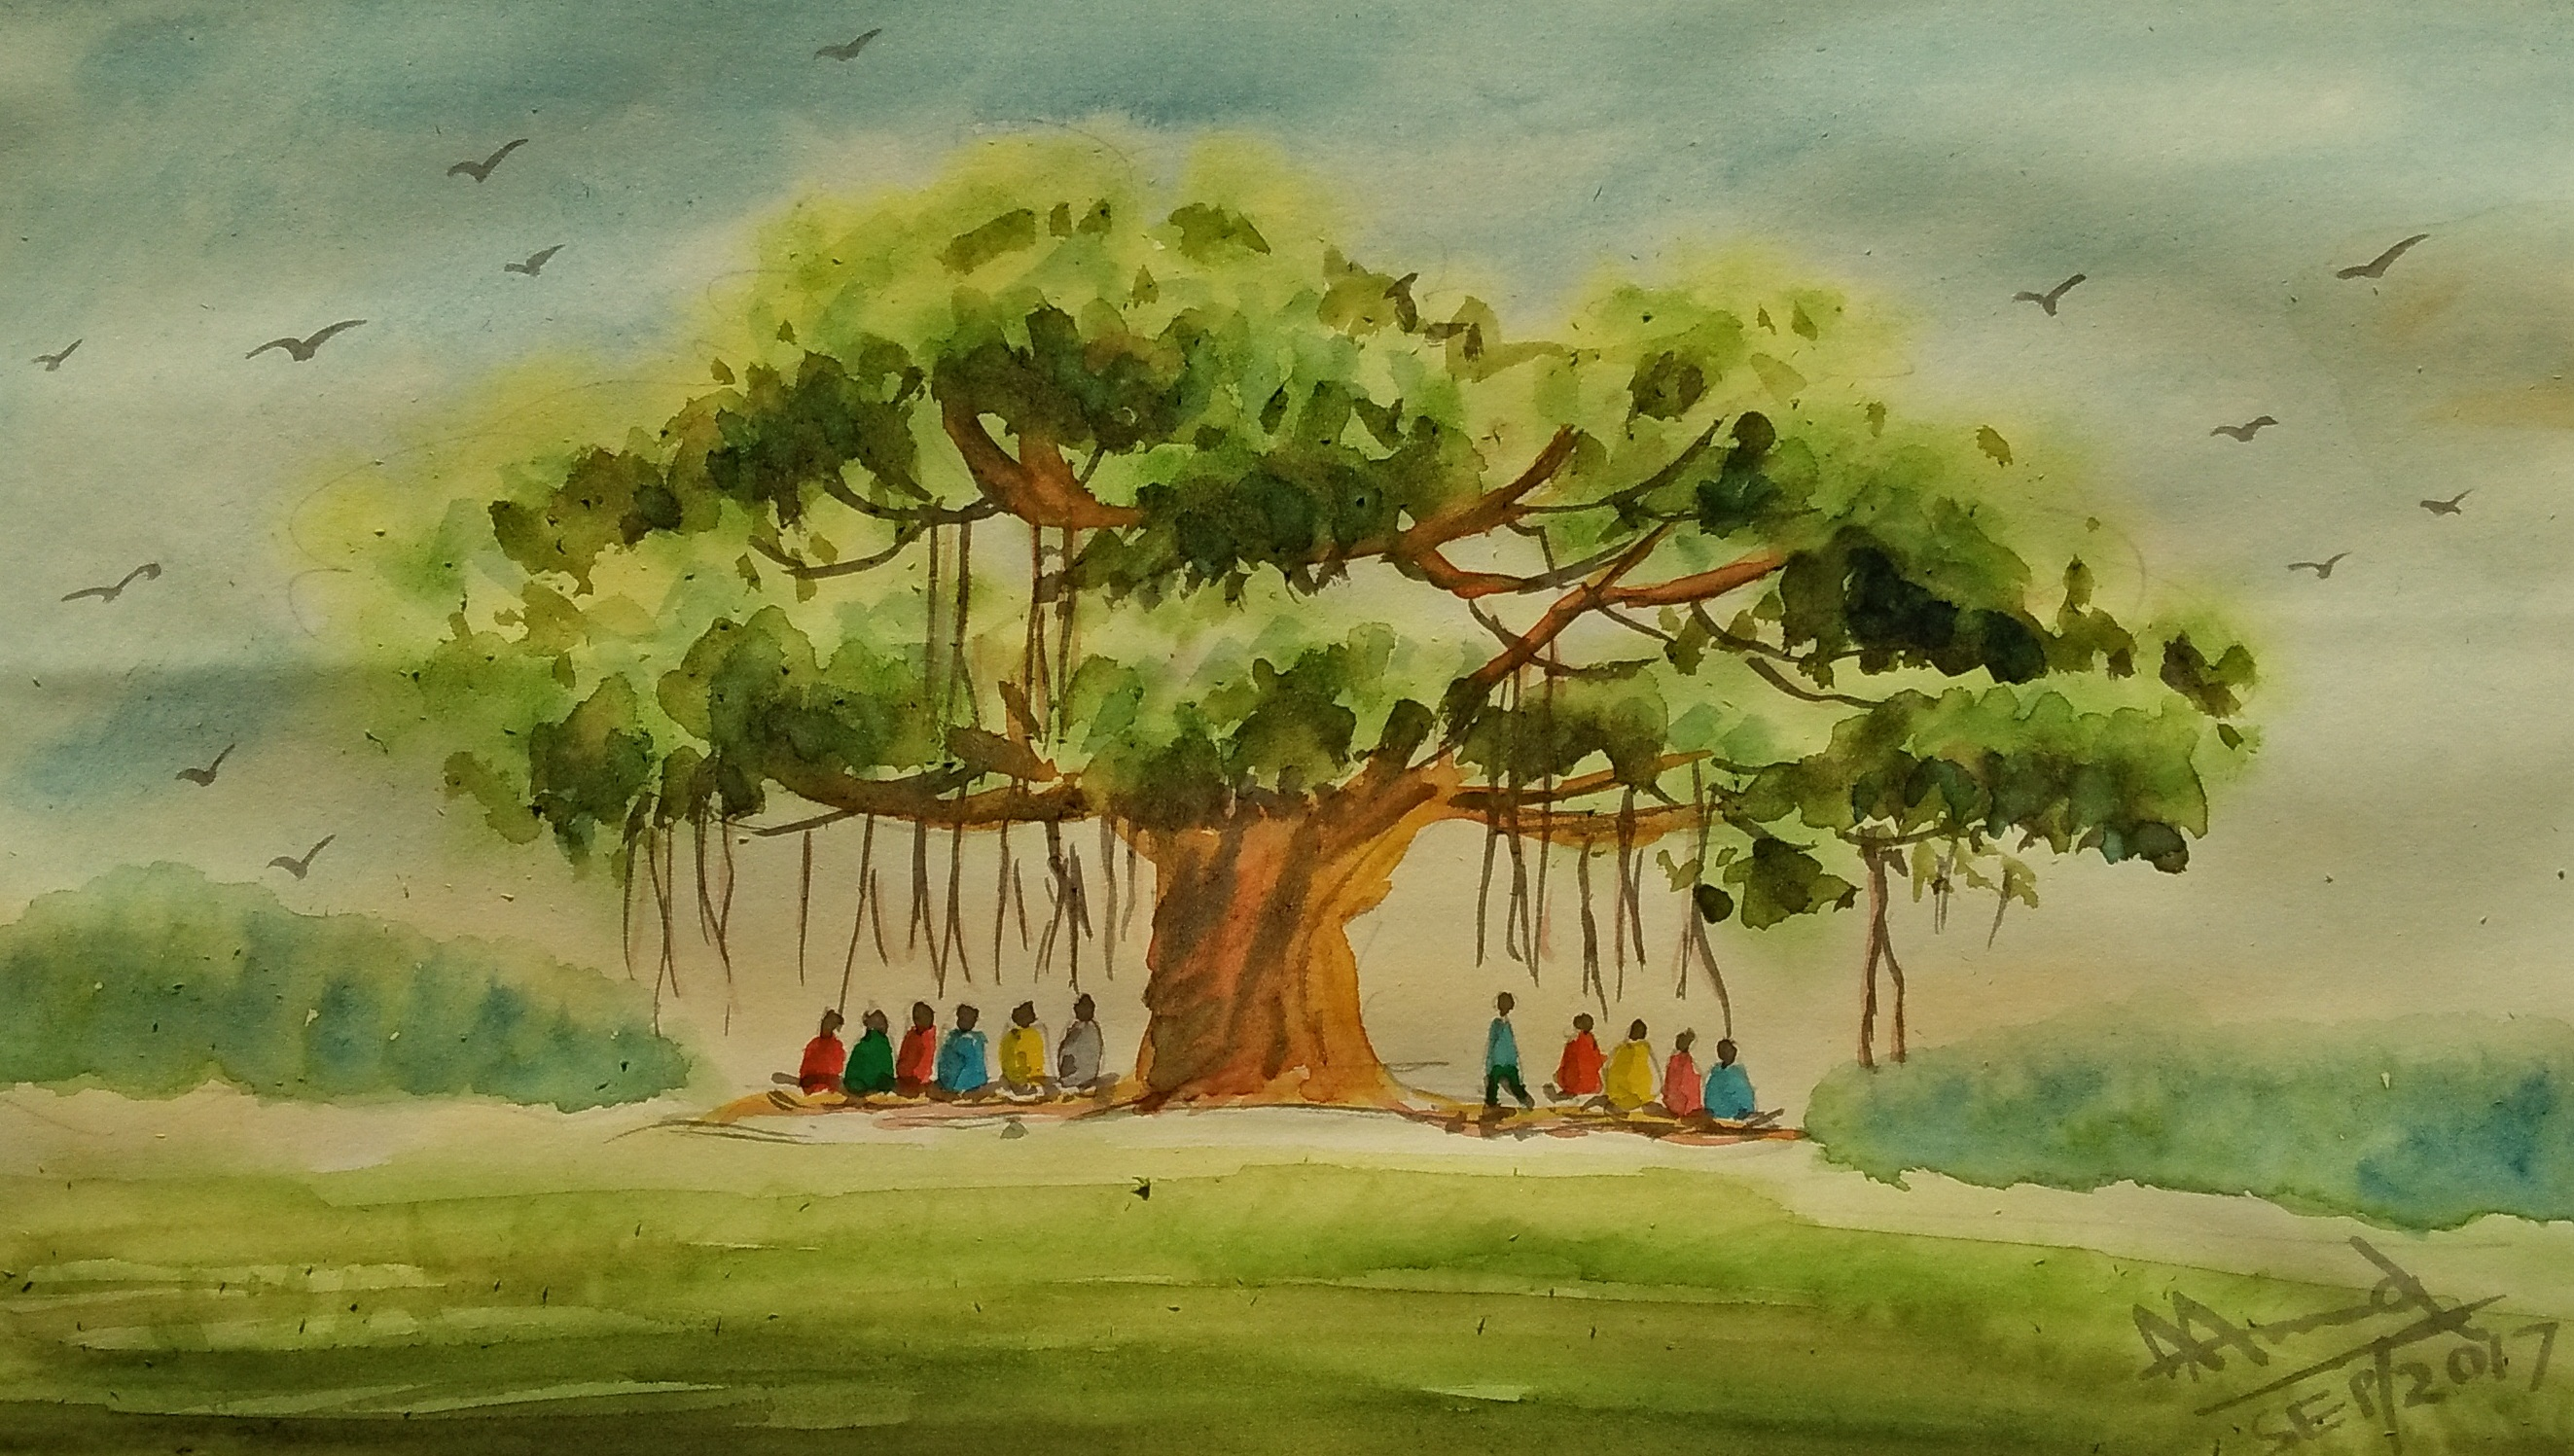 story telling under banyan tree